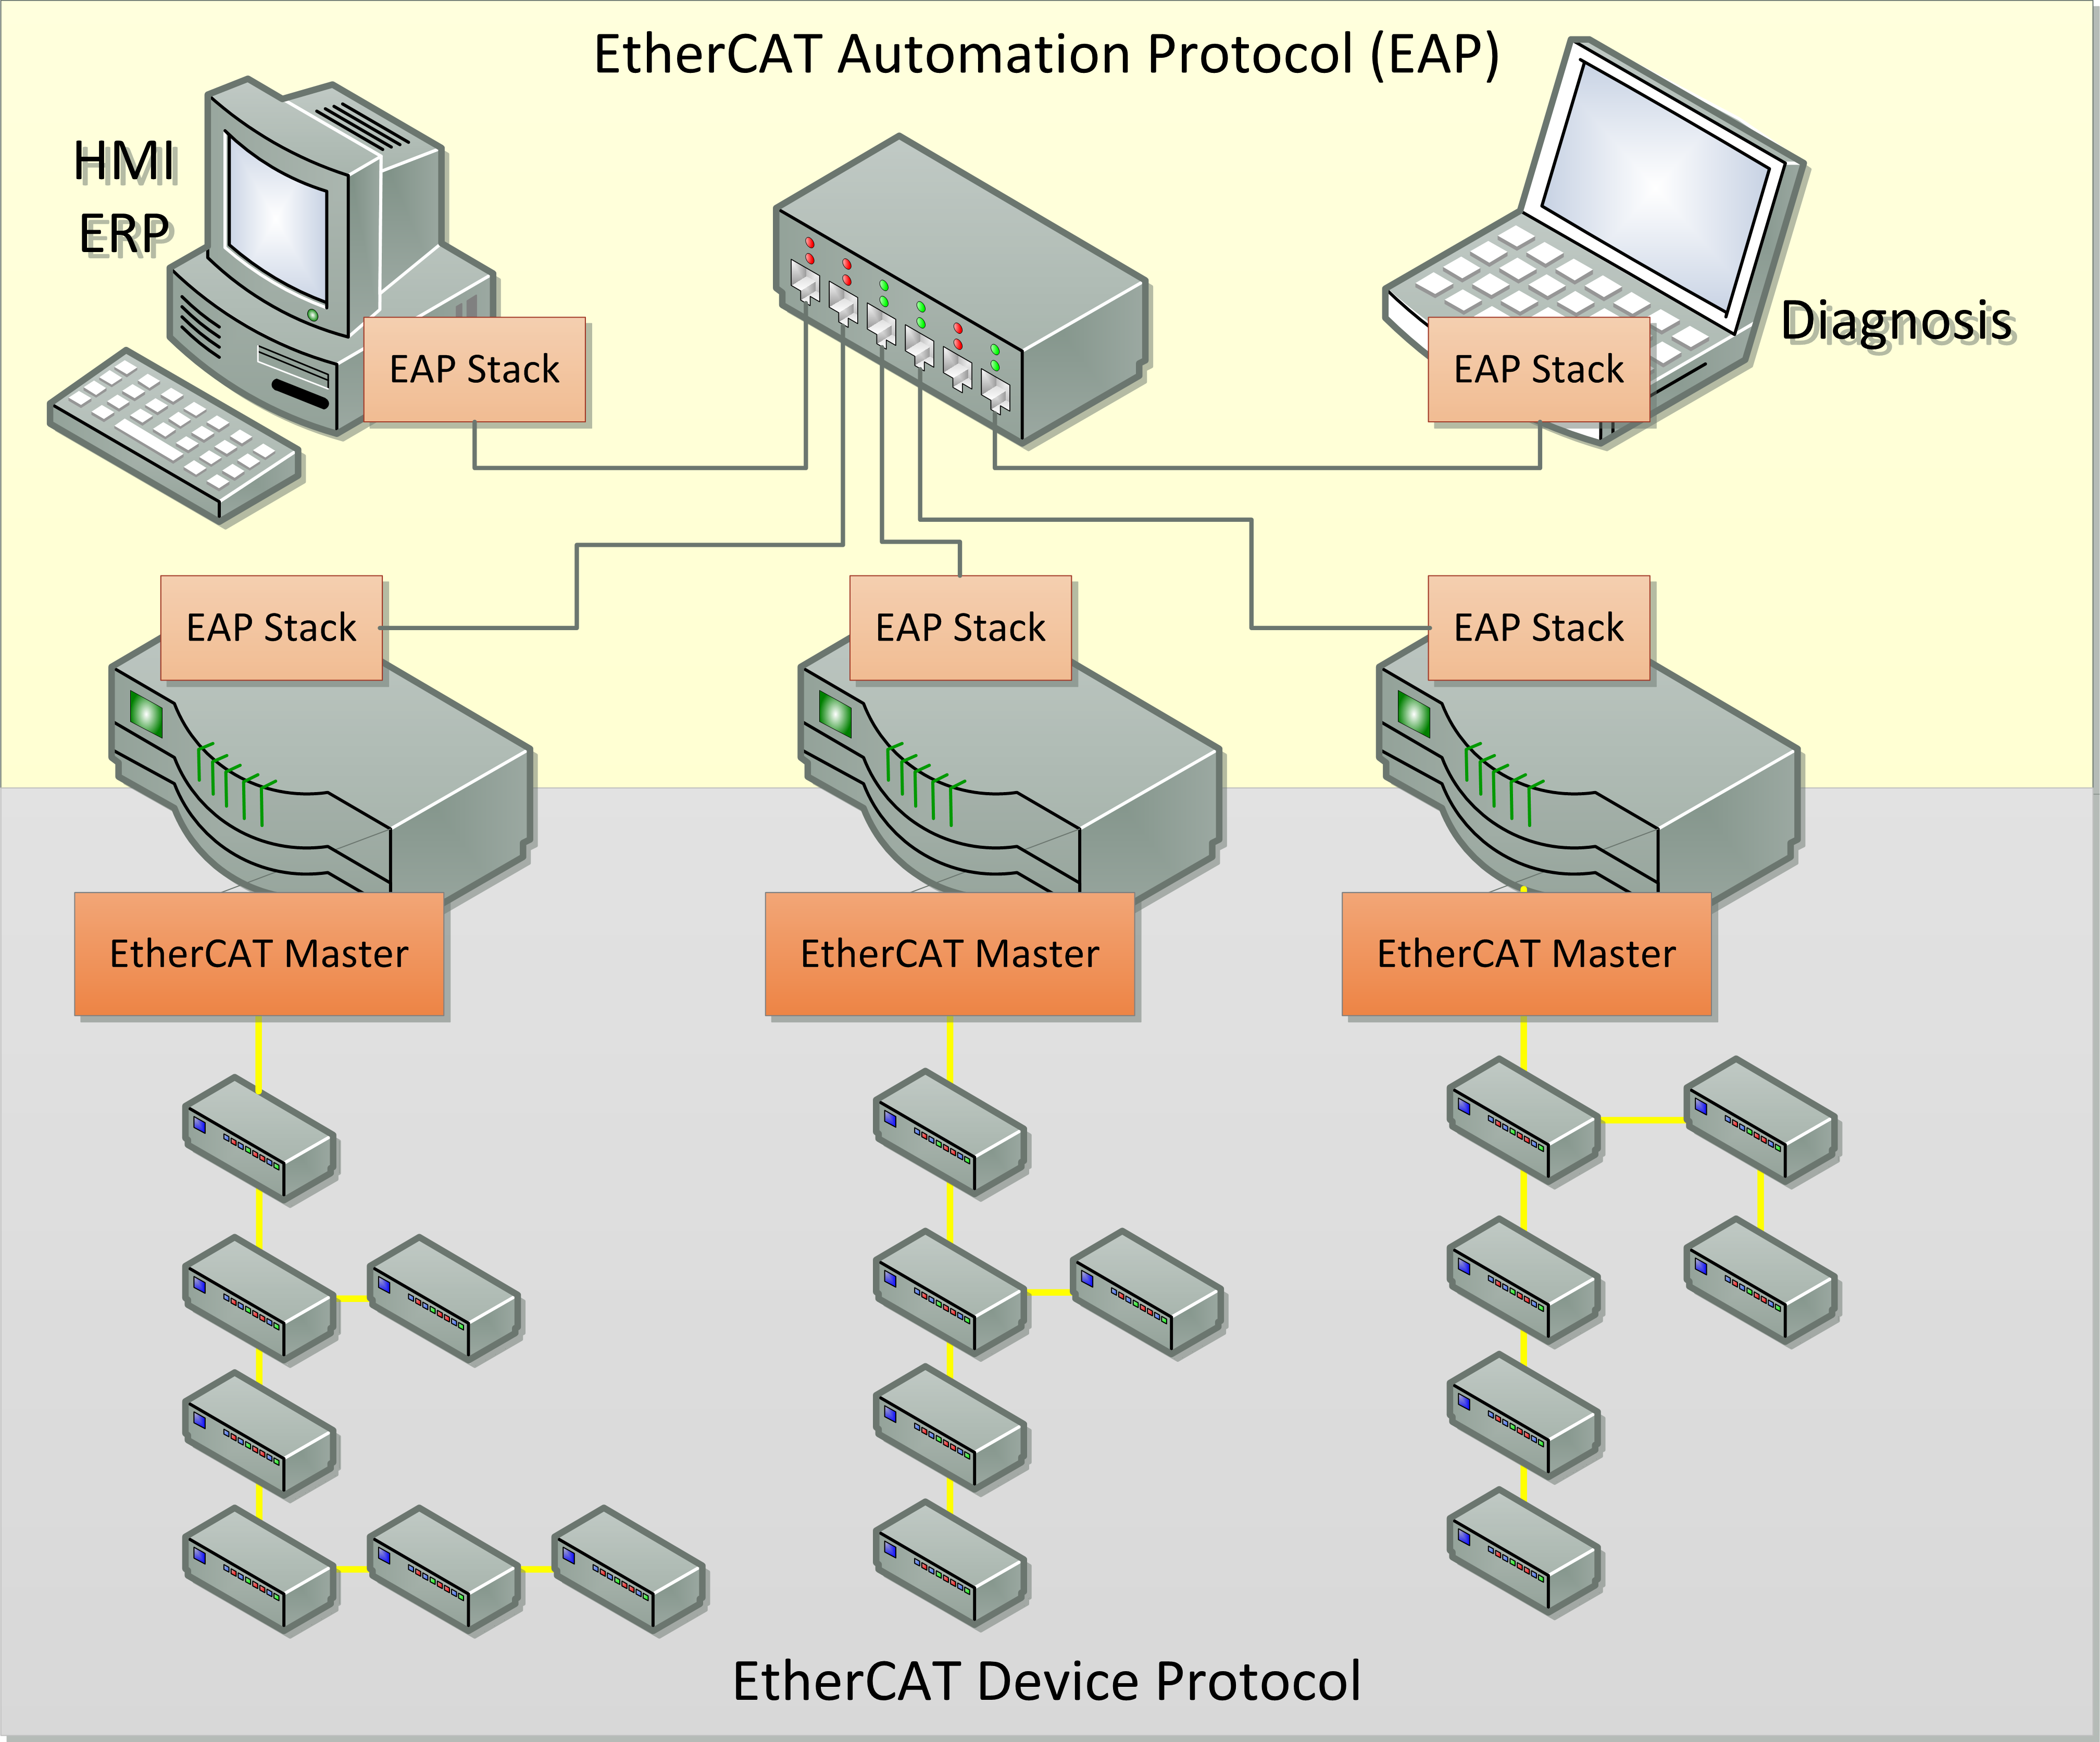 EC-EAP - System-wide communication with the EtherCAT Automation